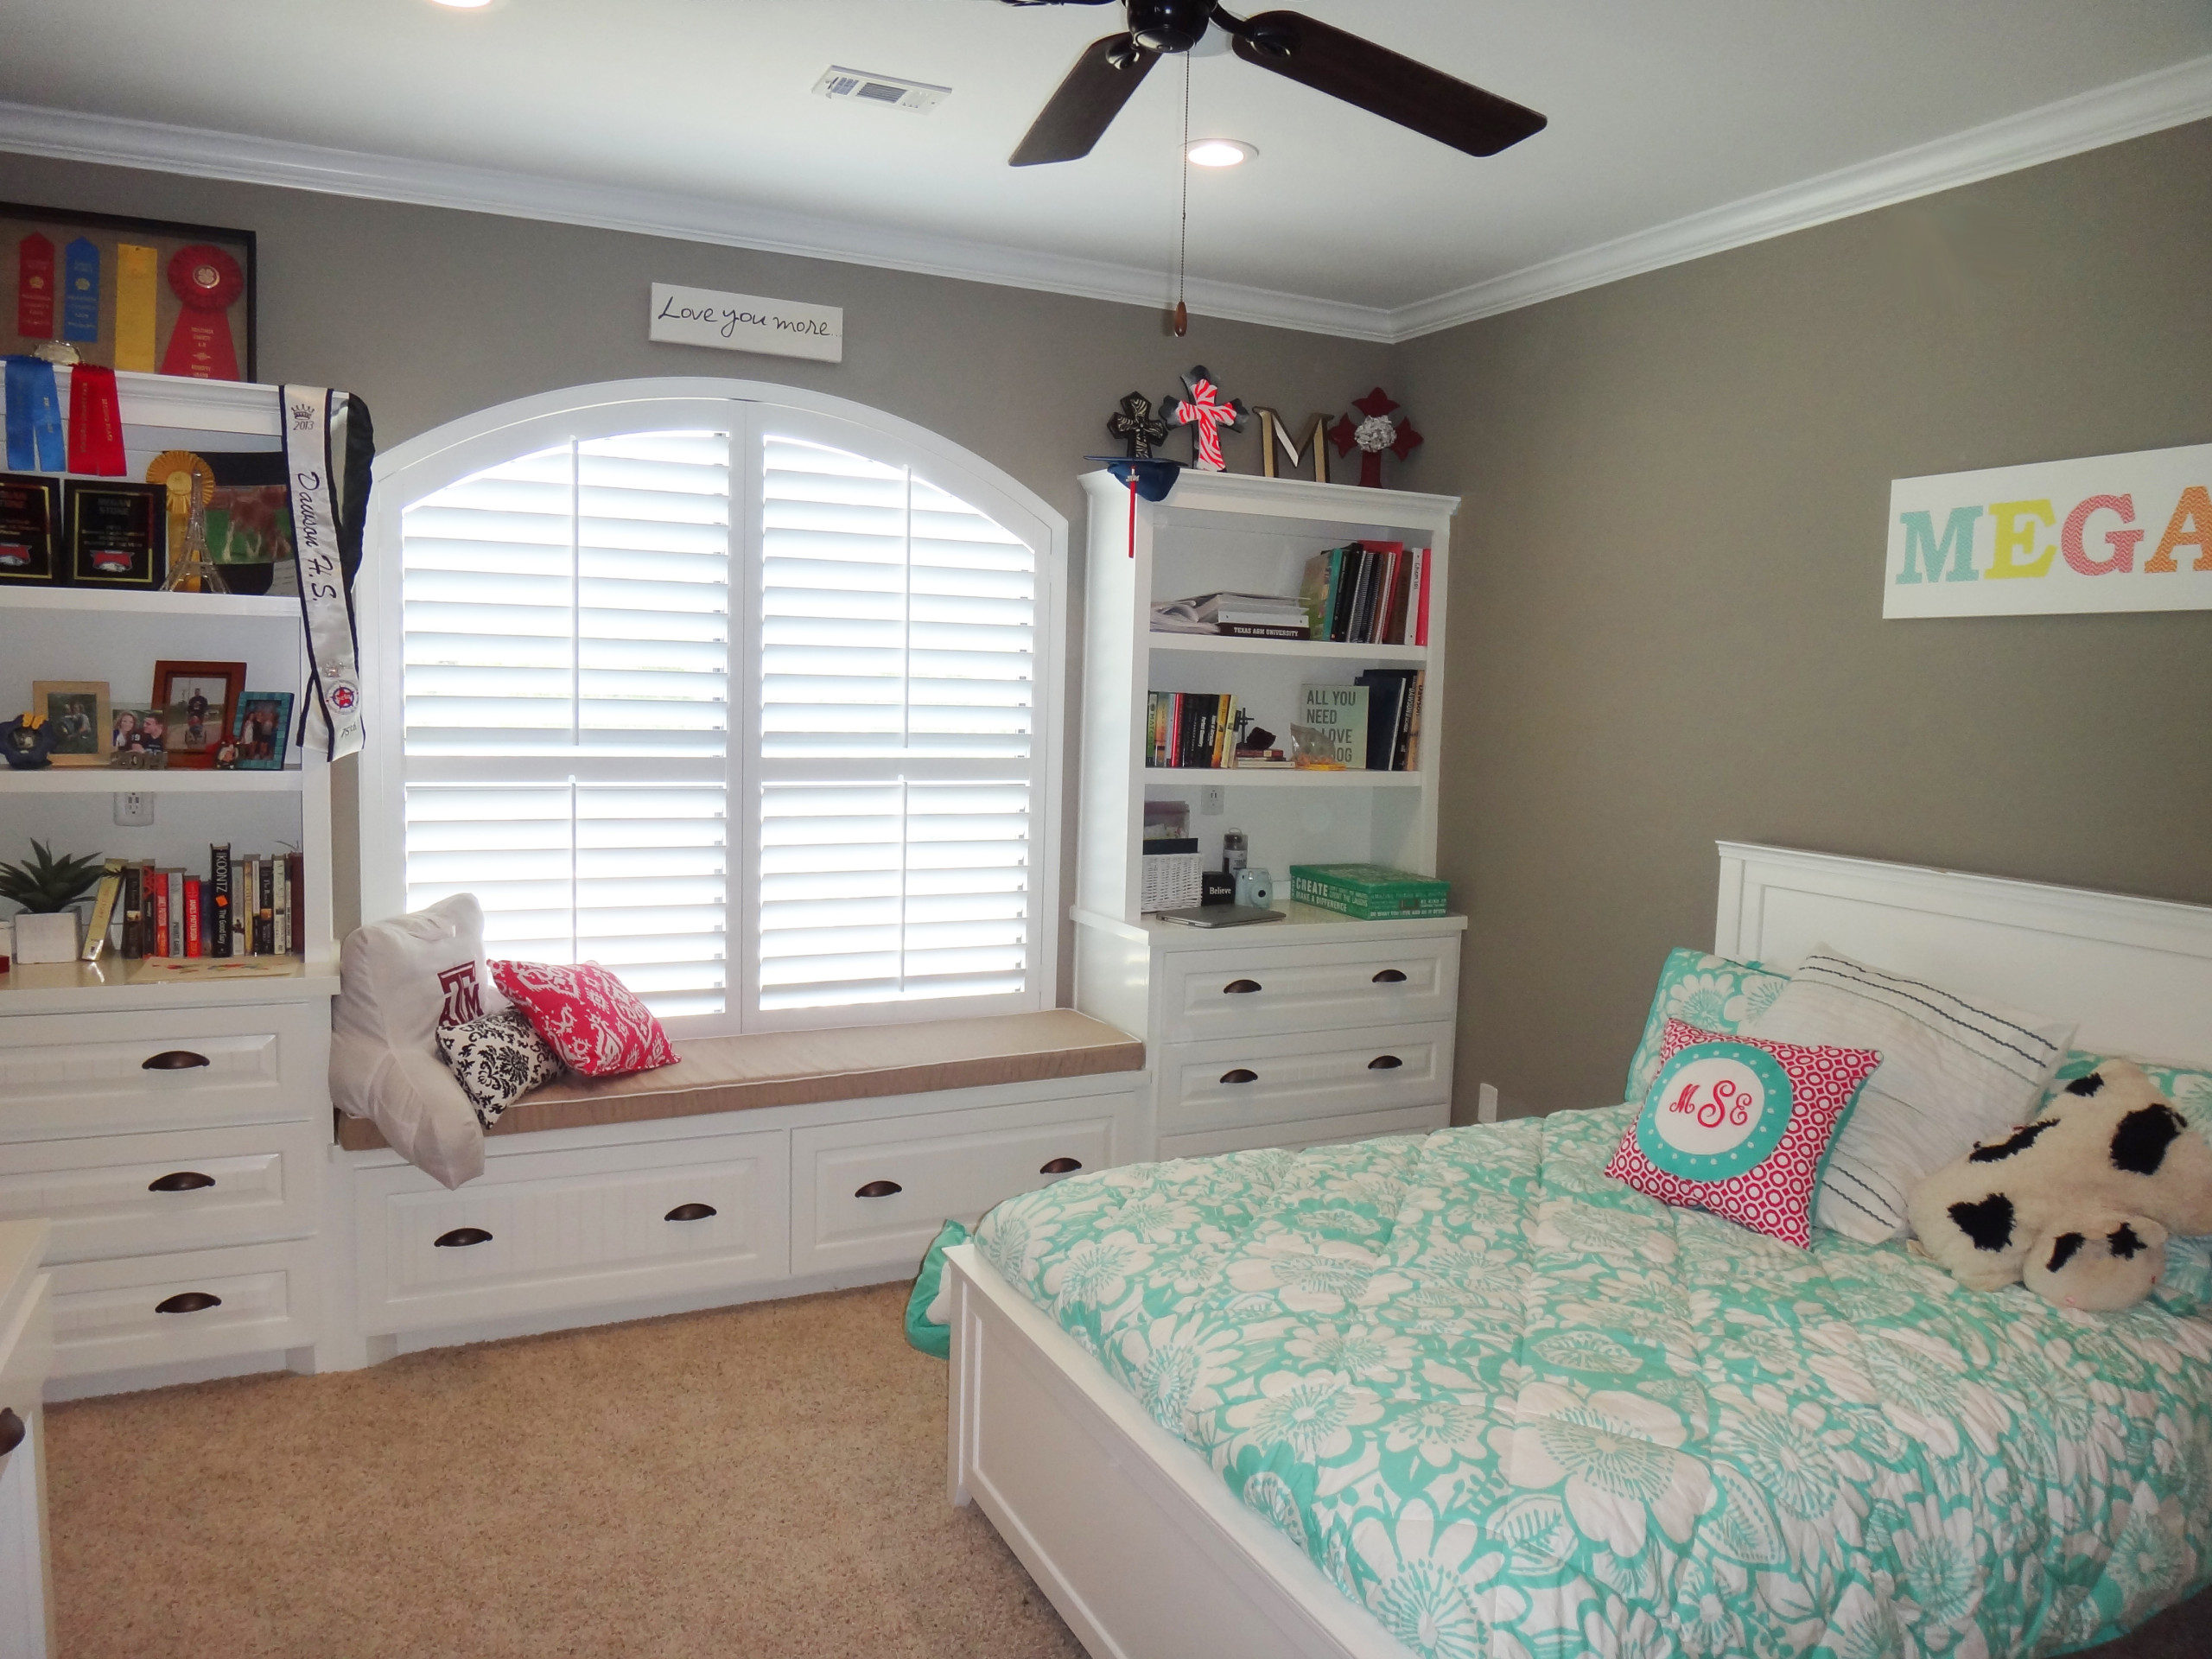 Girl's room with window seat and shelves